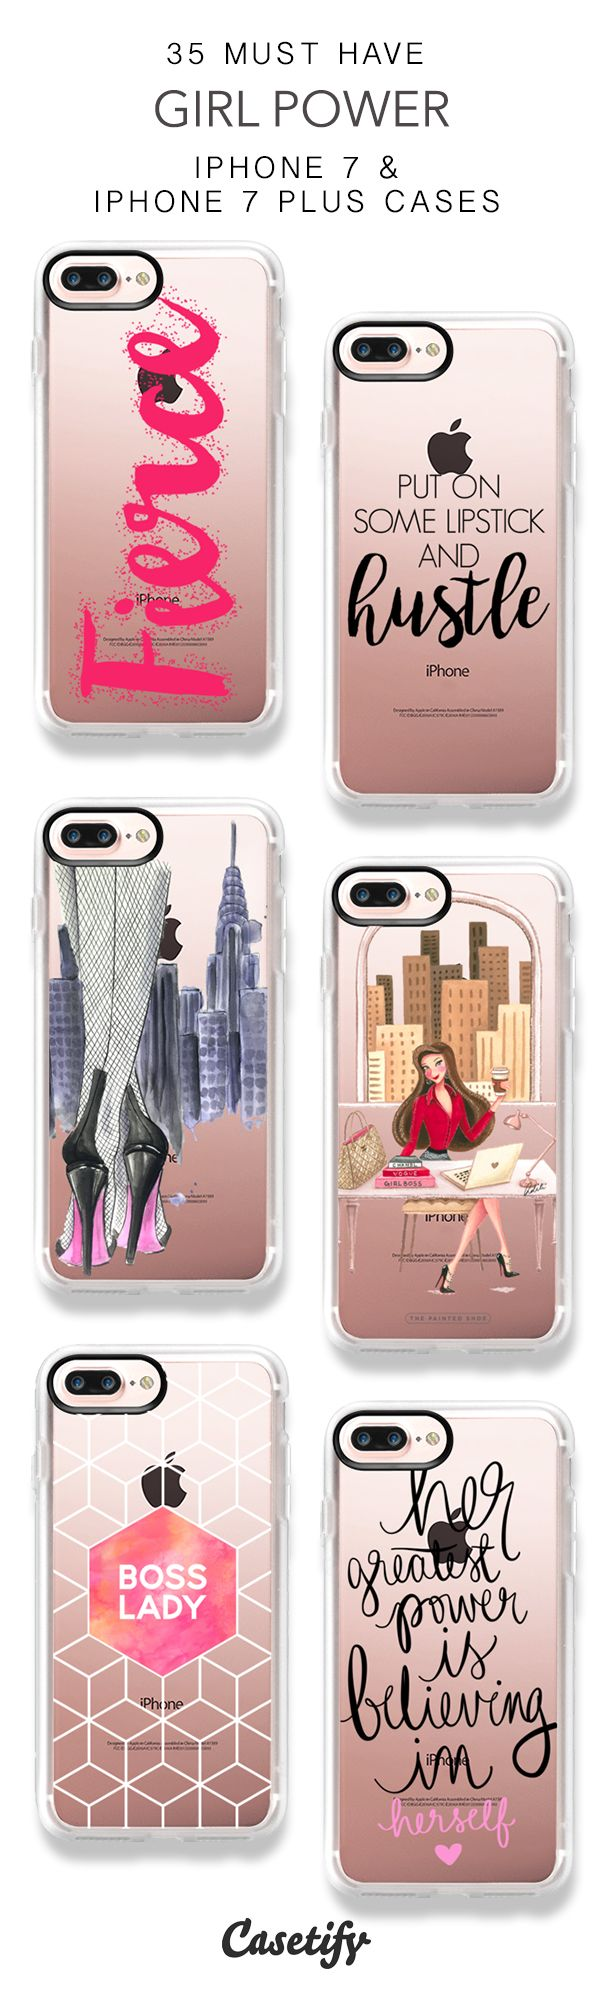 35 Must Have Girl Power iPhone 7 Cases and iPhone 7 Plus Cases. More Women iPhone case here > https://www.casetify.com/collections/top_100_designs#/?vc=9heVycyoOv